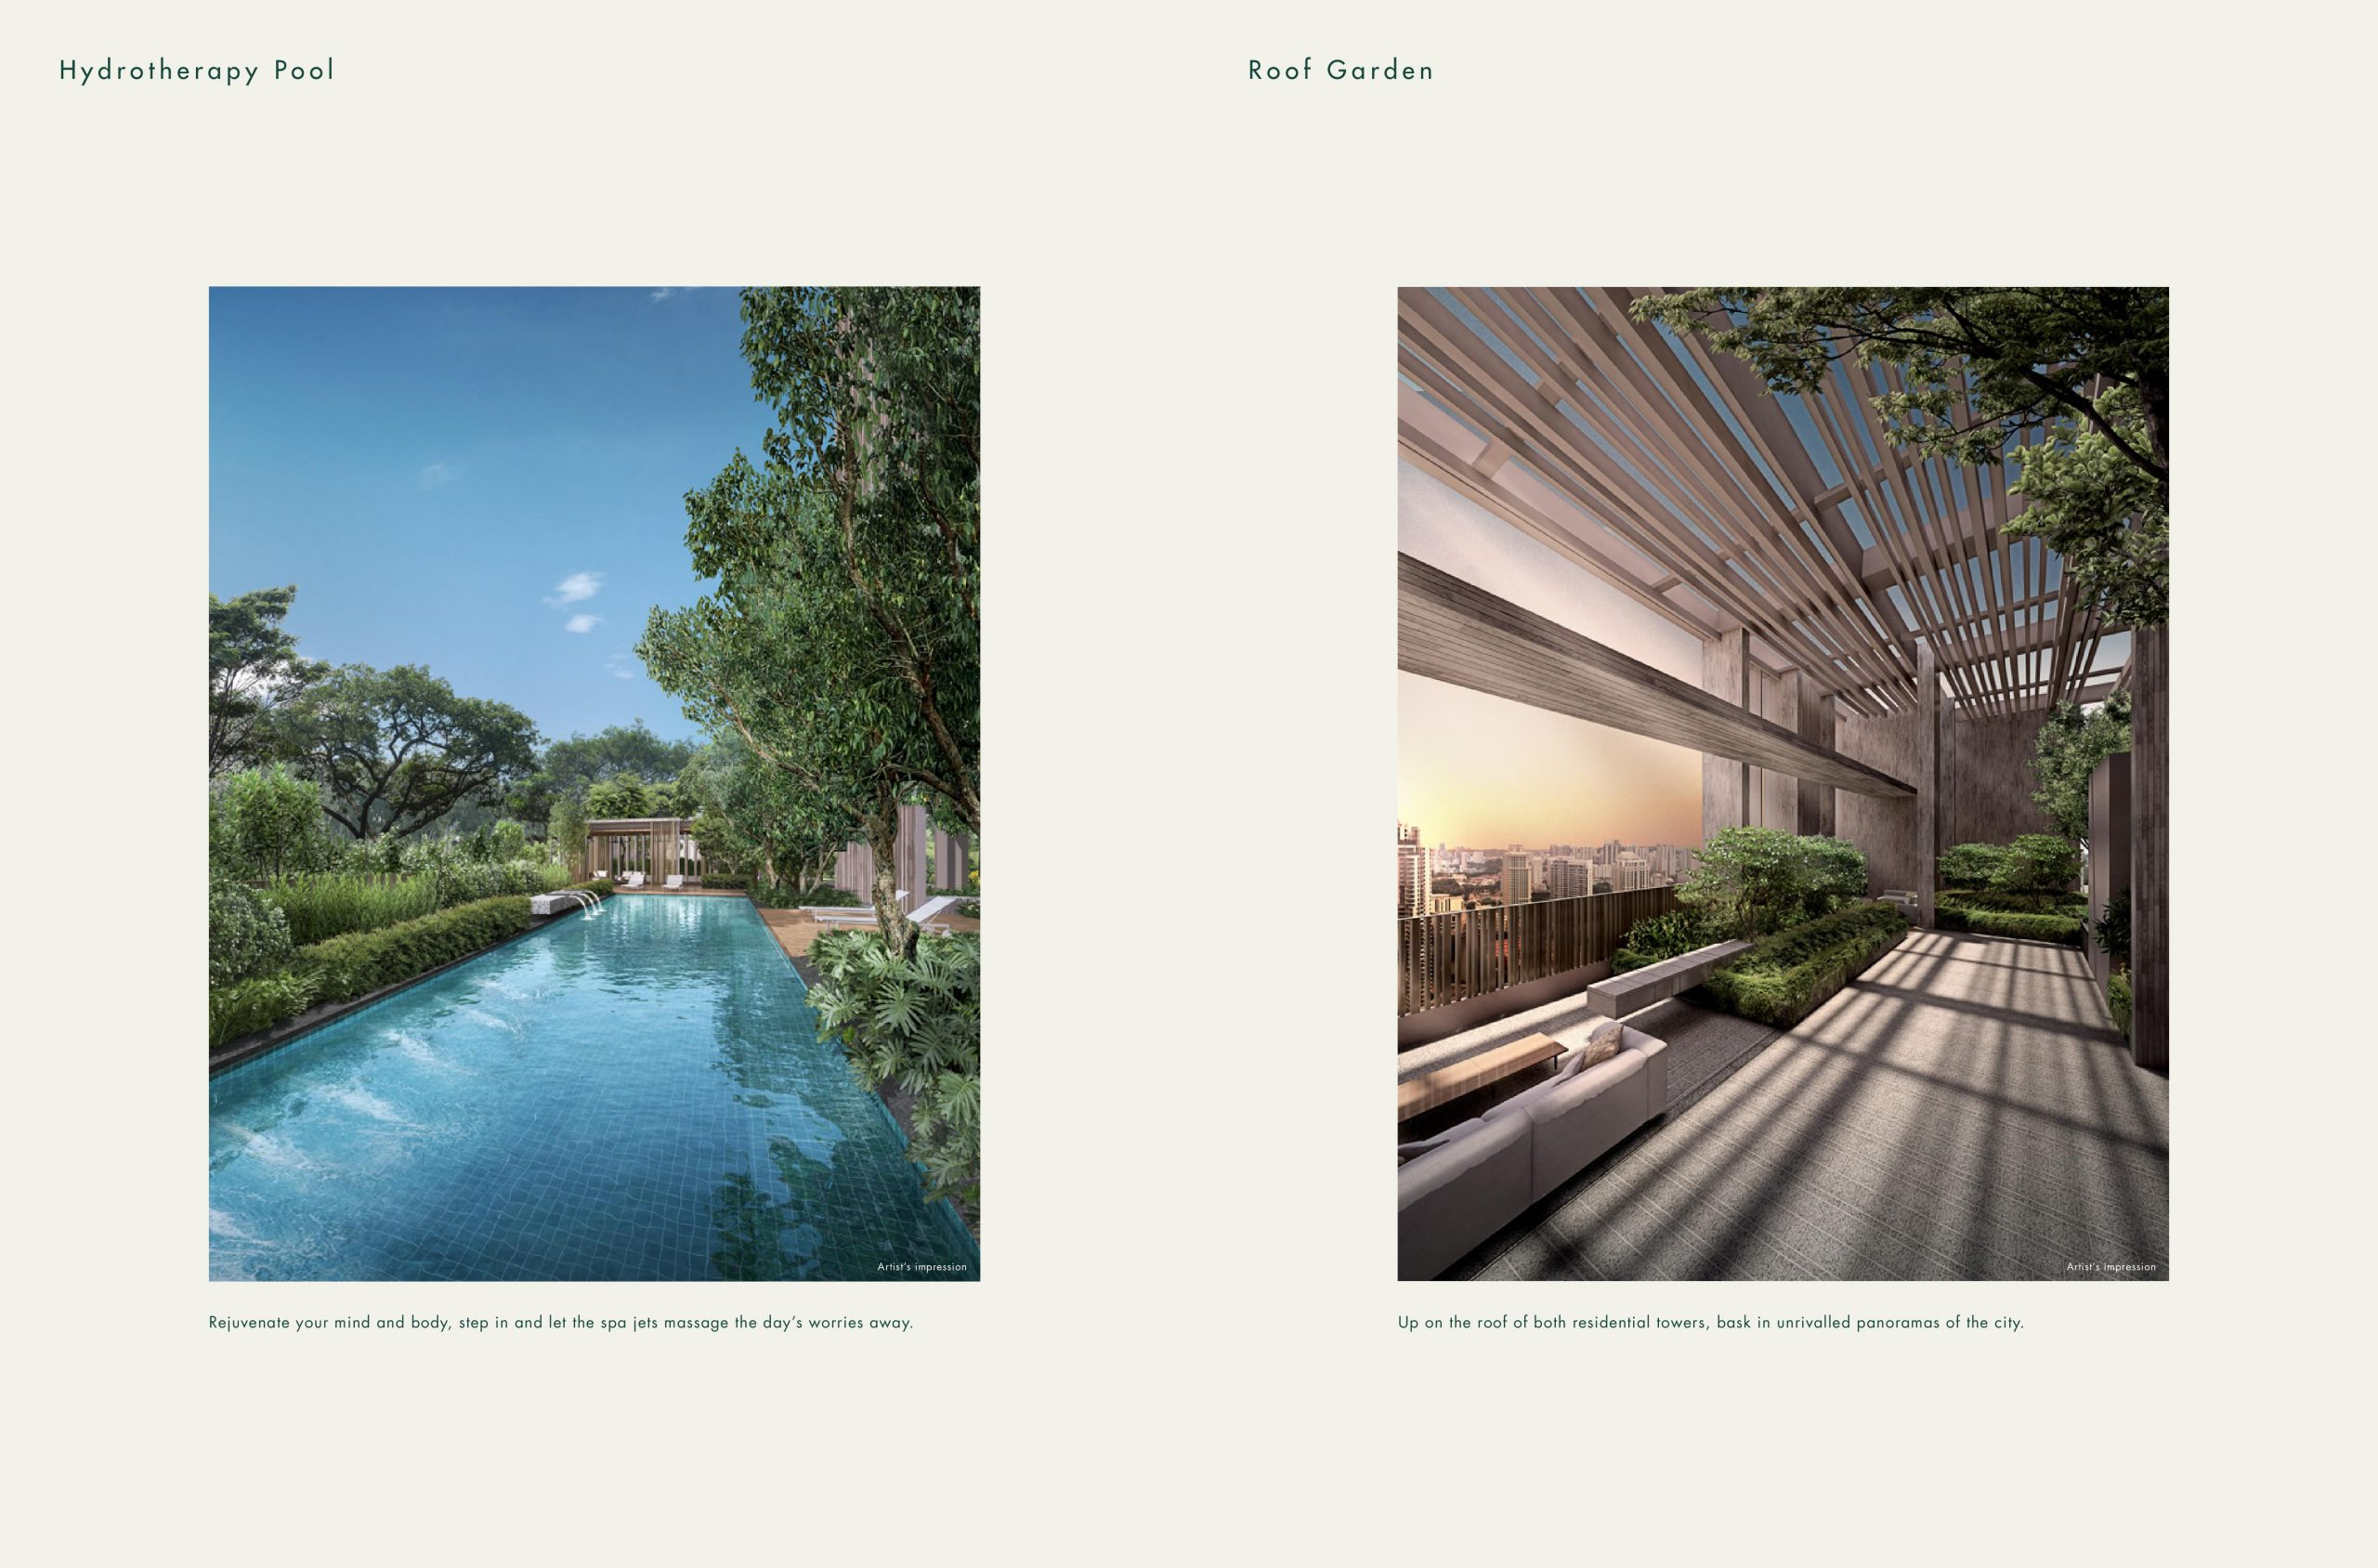 The Avenir Hydrotherapy Pool Roof Garden